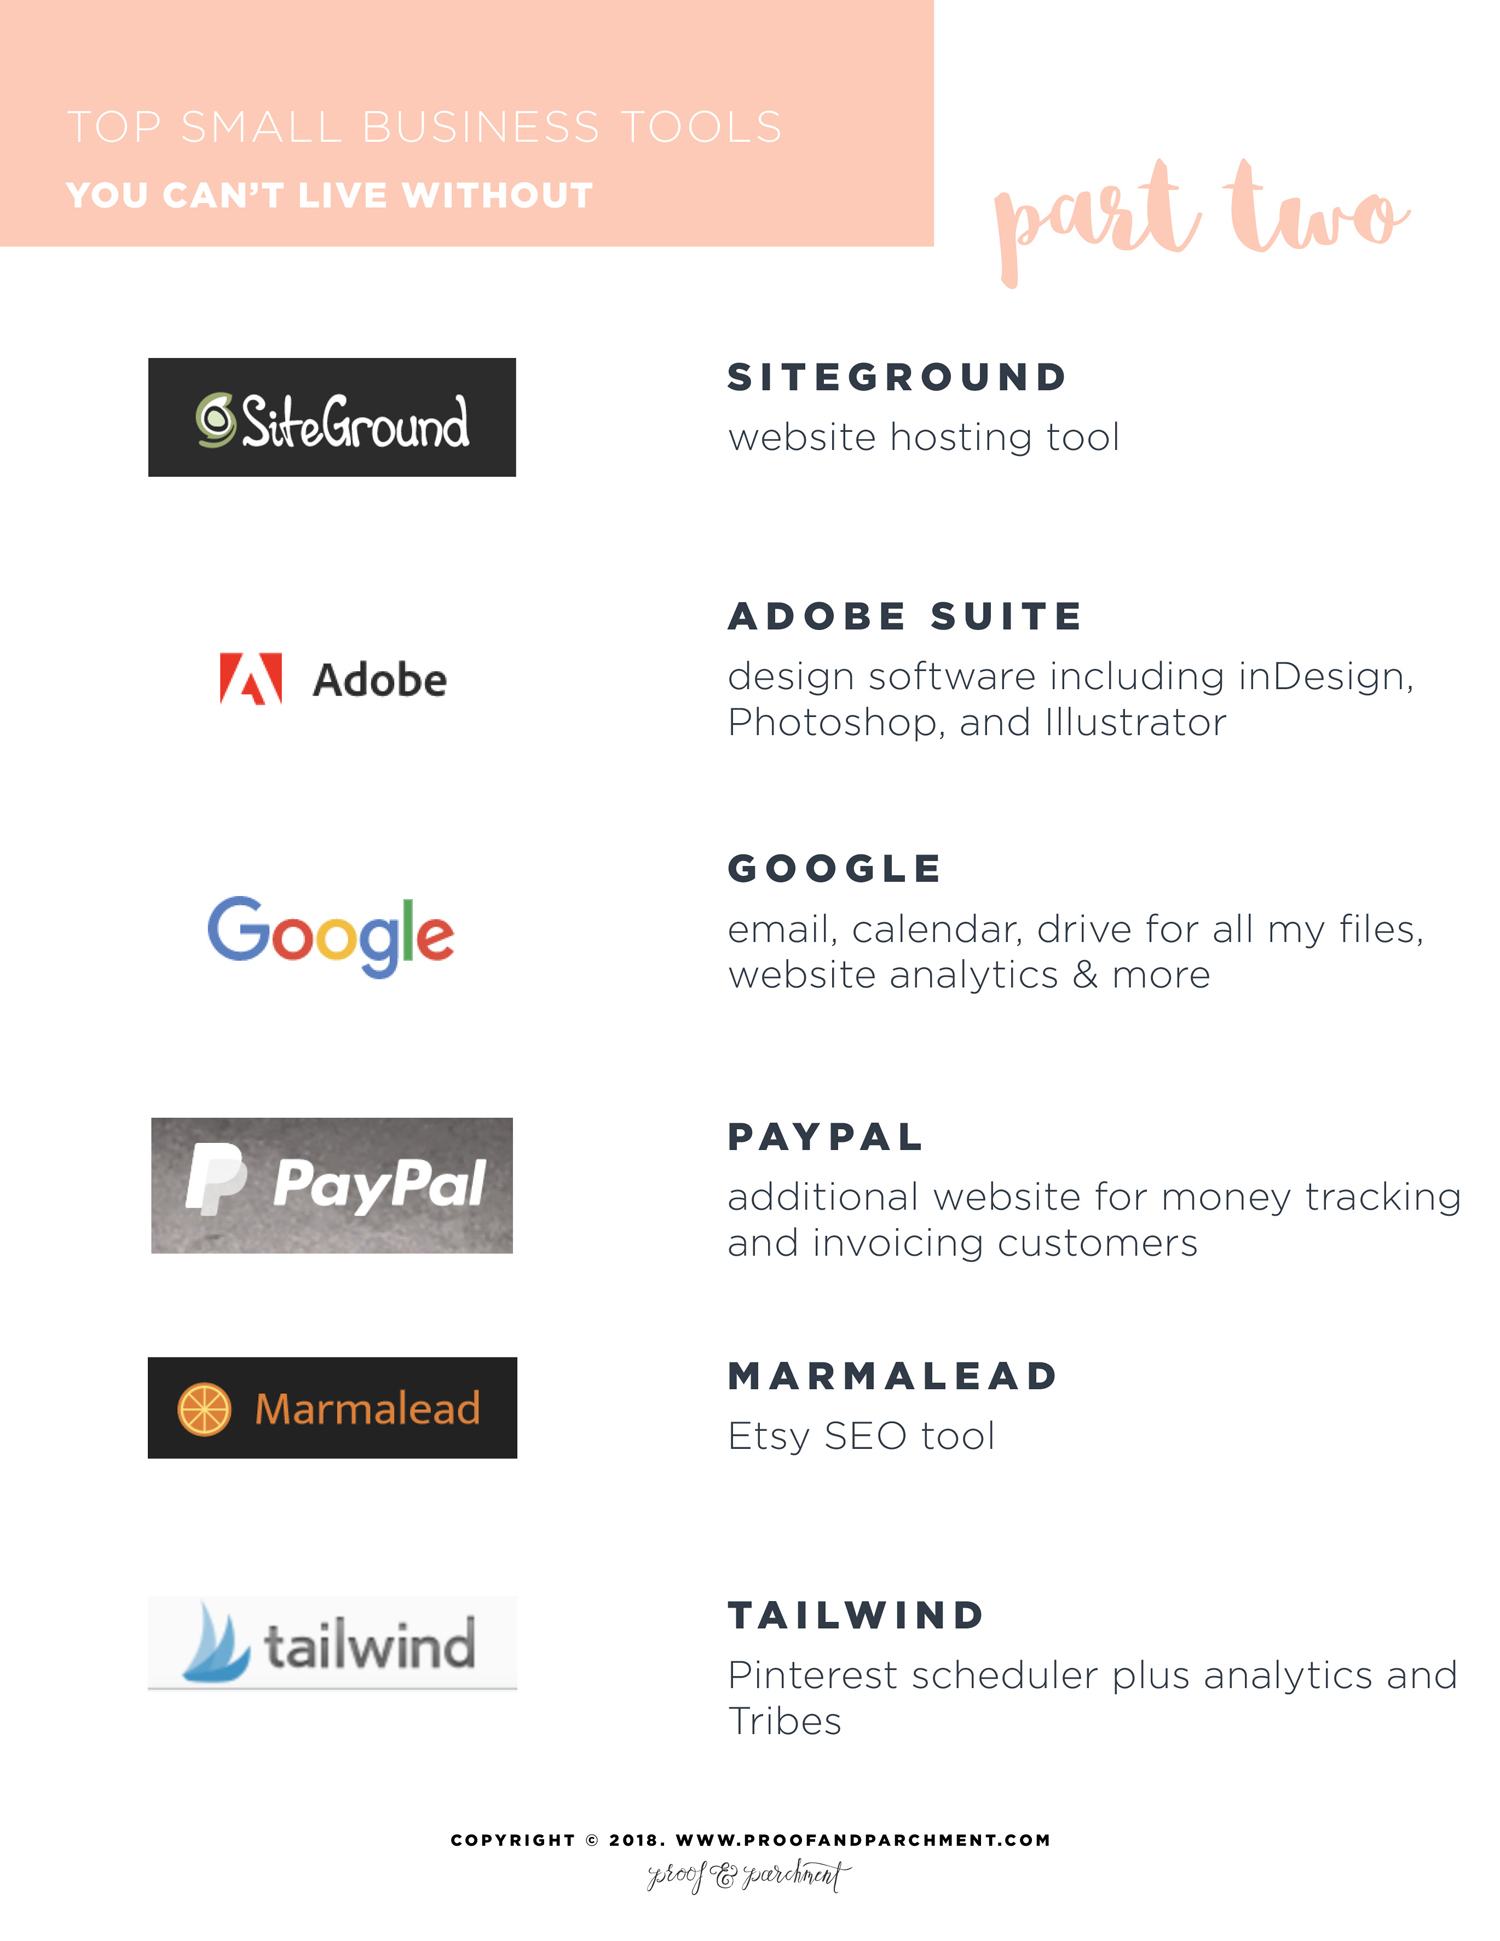 Top Small Business Tools You Can't Live Without Part Two: Graphic explaining all of the tools including SiteGround, Adobe, Google, PayPal, Marmalead, and Tailwind